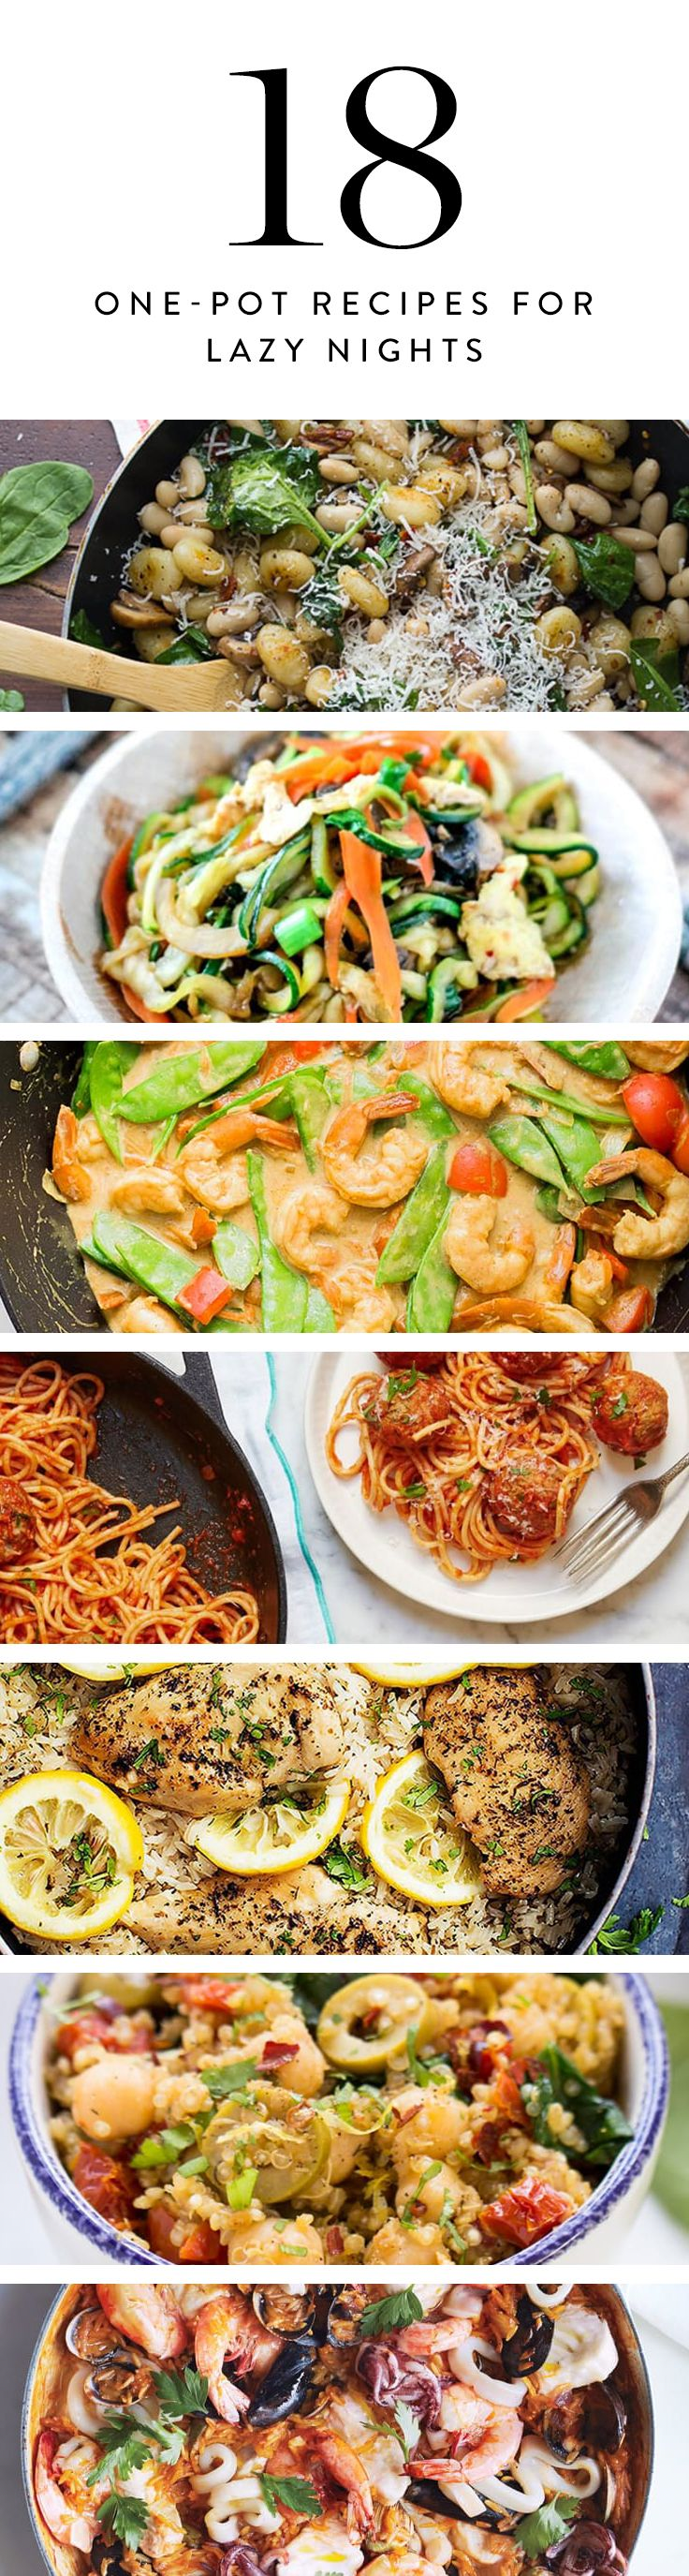 18 simple one-pot recipes that taste delicious and make cleanup a breeze. Add these to your cooking repertoire to make weeknights easier.